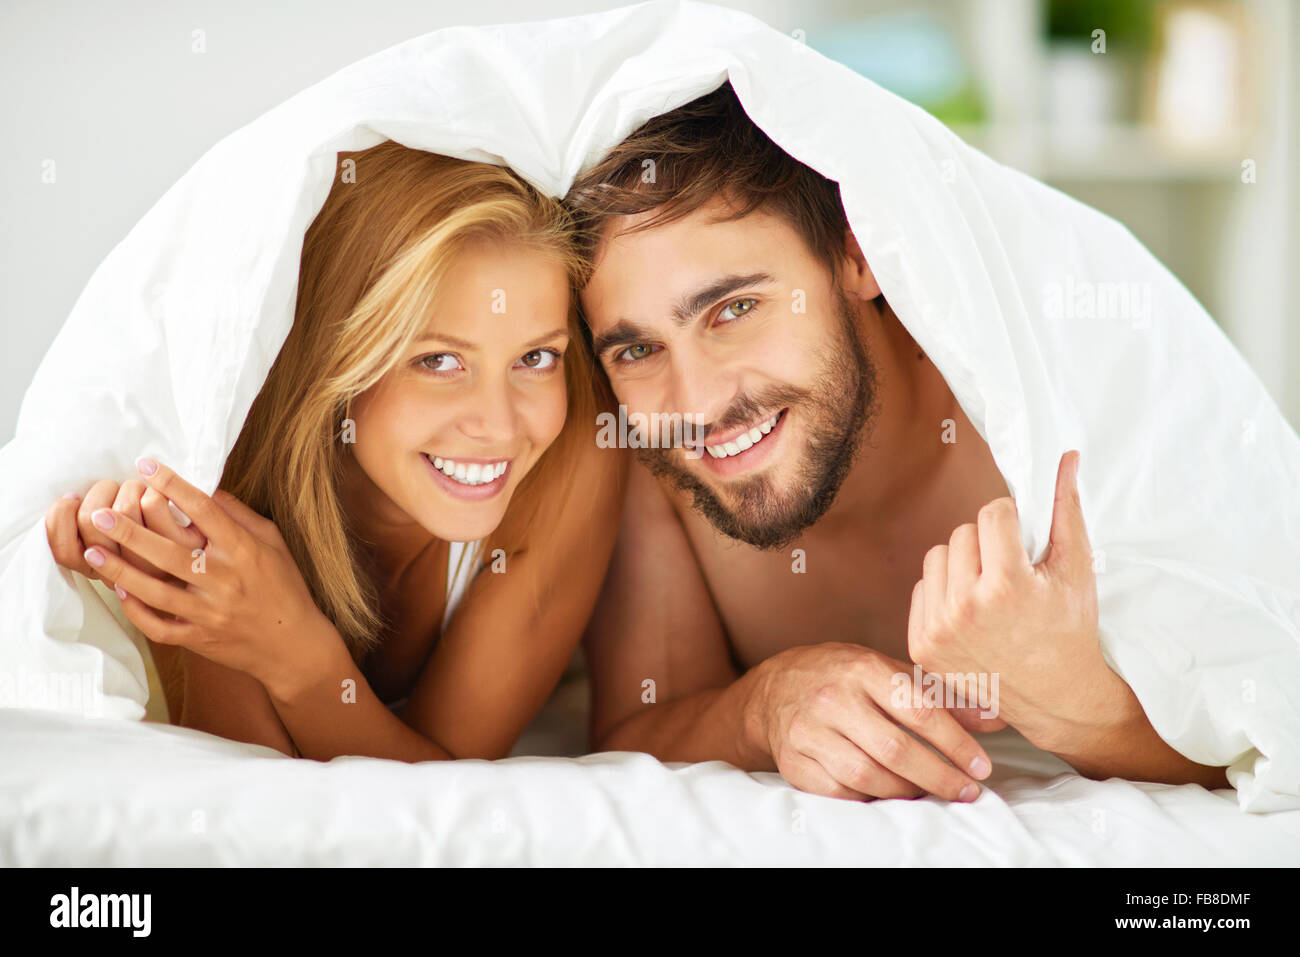 Happy dates under blanket looking at camera with smiles - Stock Image